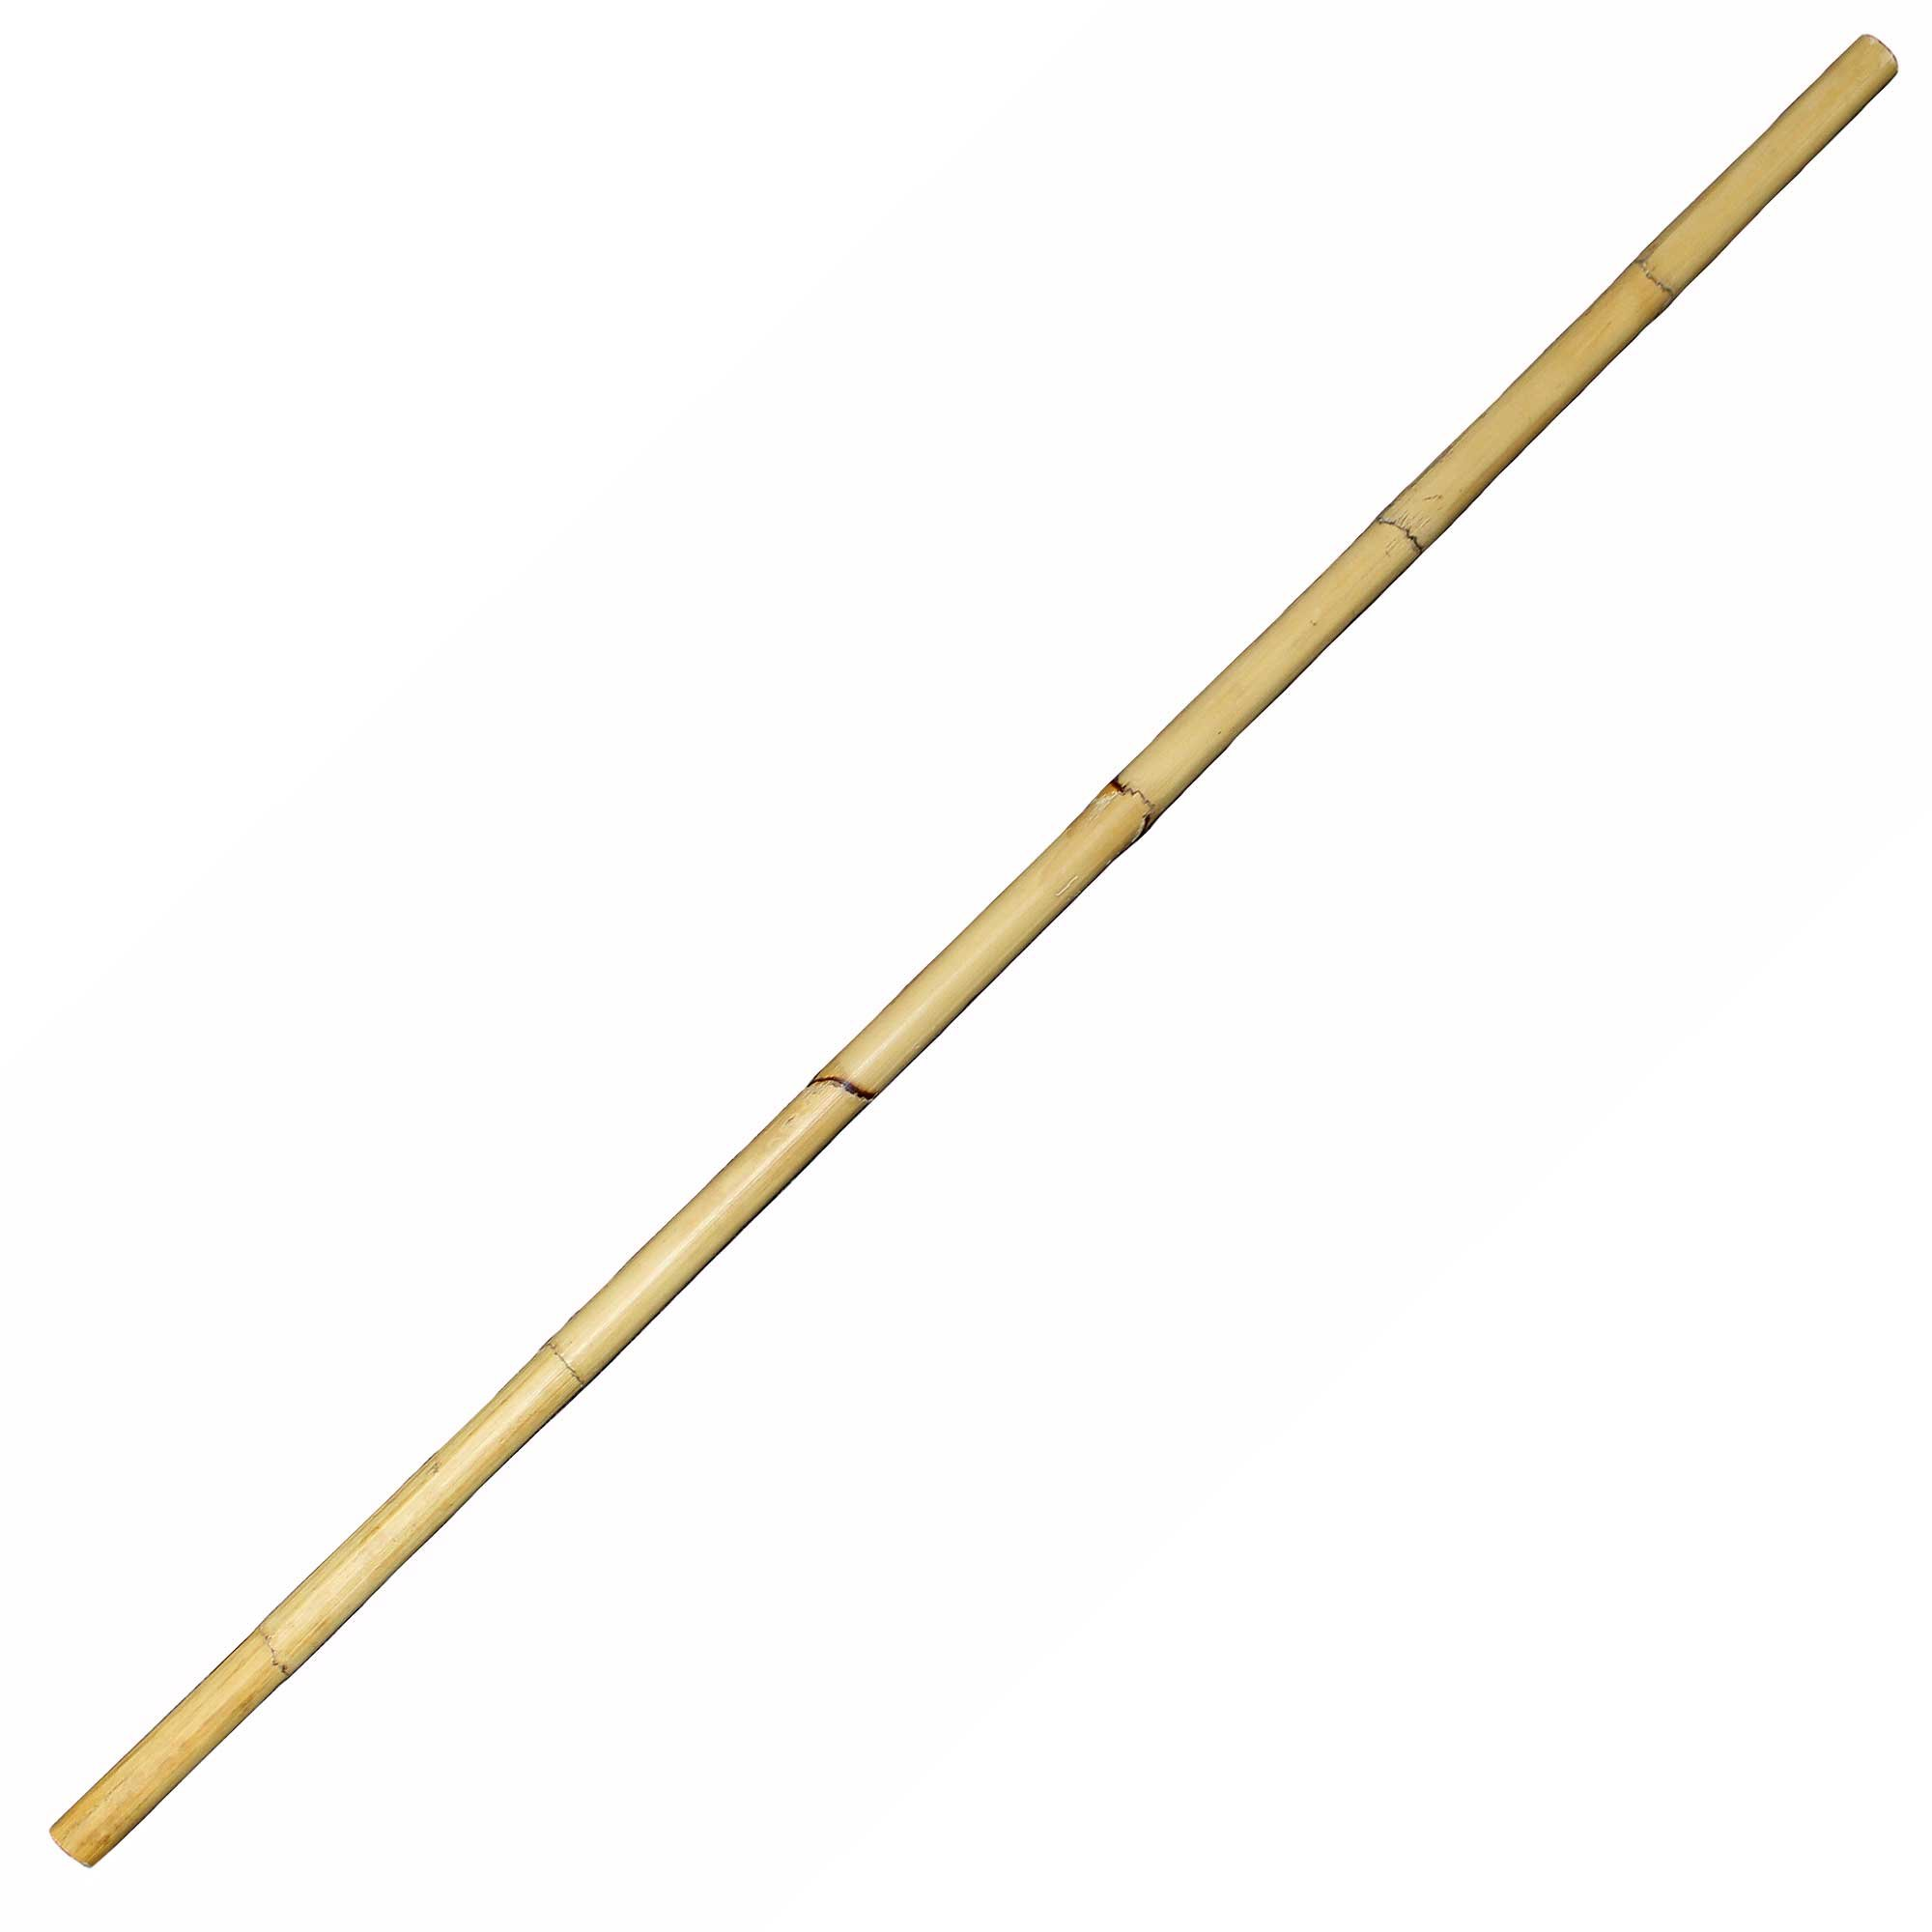 BambooMN 66'' Multi Purpose Solid Natural Rattan Pole - 5.5-ft Long x 1.1-Inch Diameter - 3 Pieces